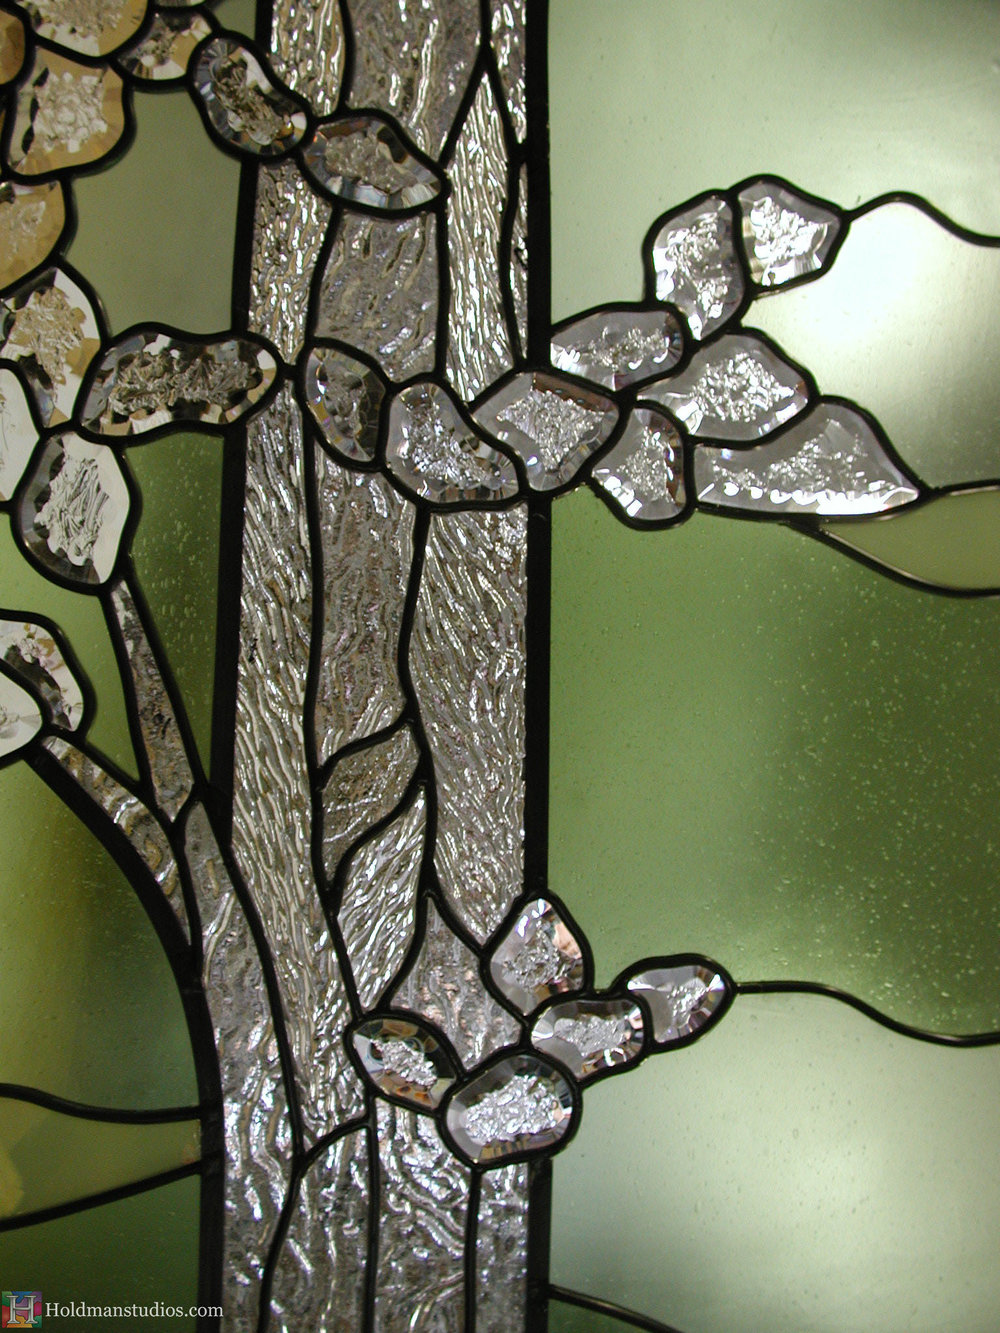 Holdman_Studios_Stained_Art_Glass_LDS_Mormon_Palmyra_New_York_Temple_Sacred_Grove_Tree_of_Life_Window_Closeup4.jpg